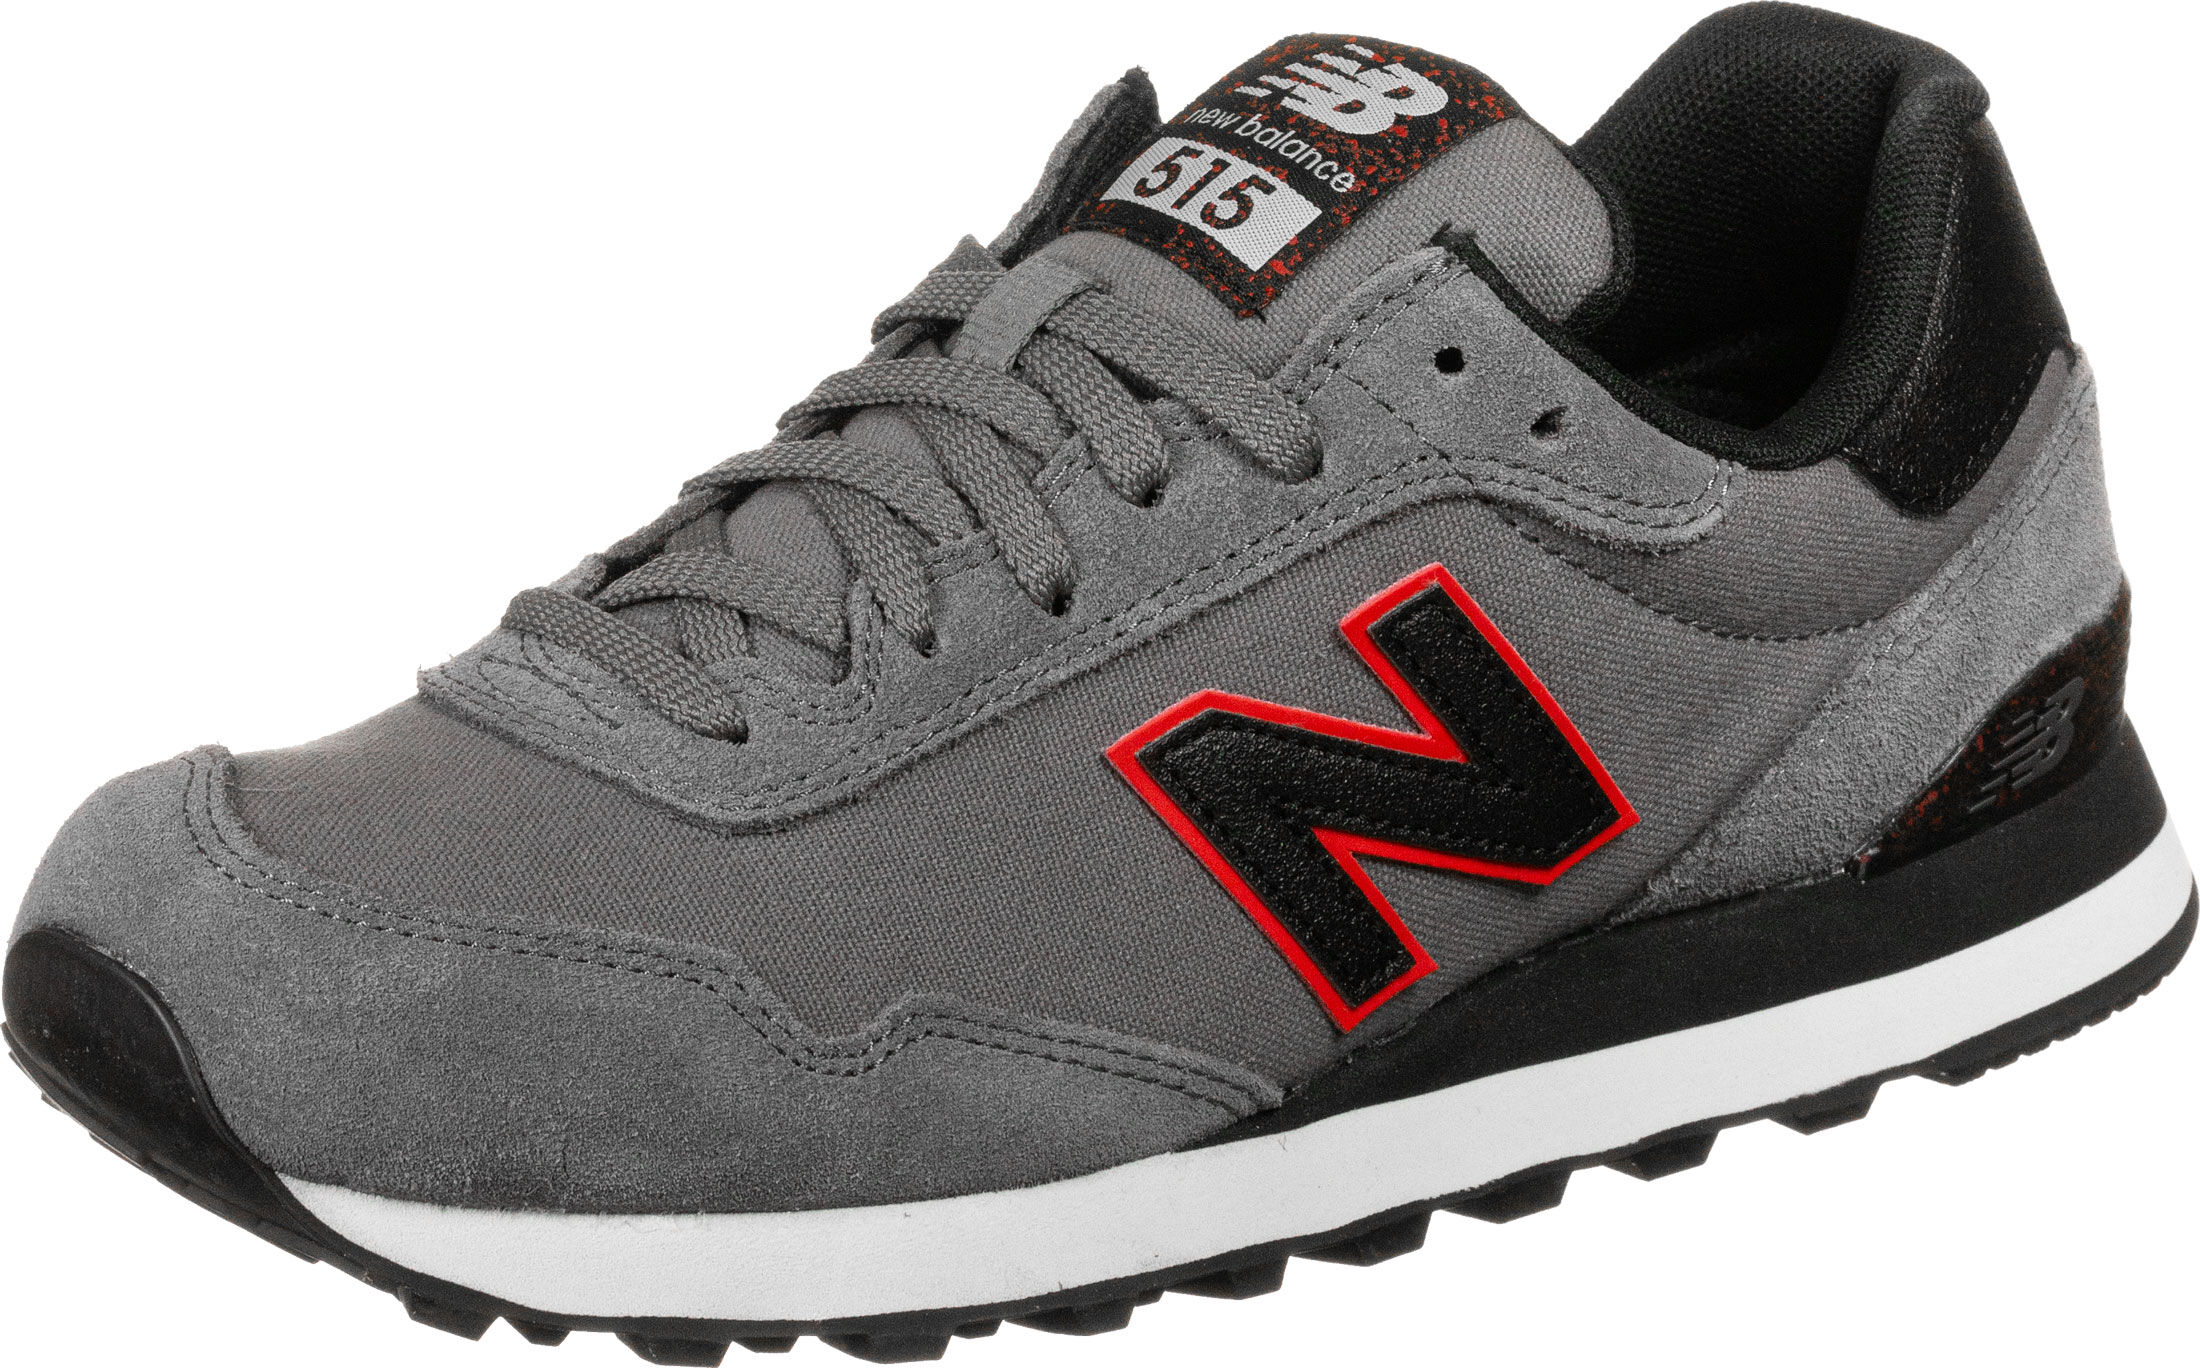 New Balance ML515 - Sneakers Low at Stylefile